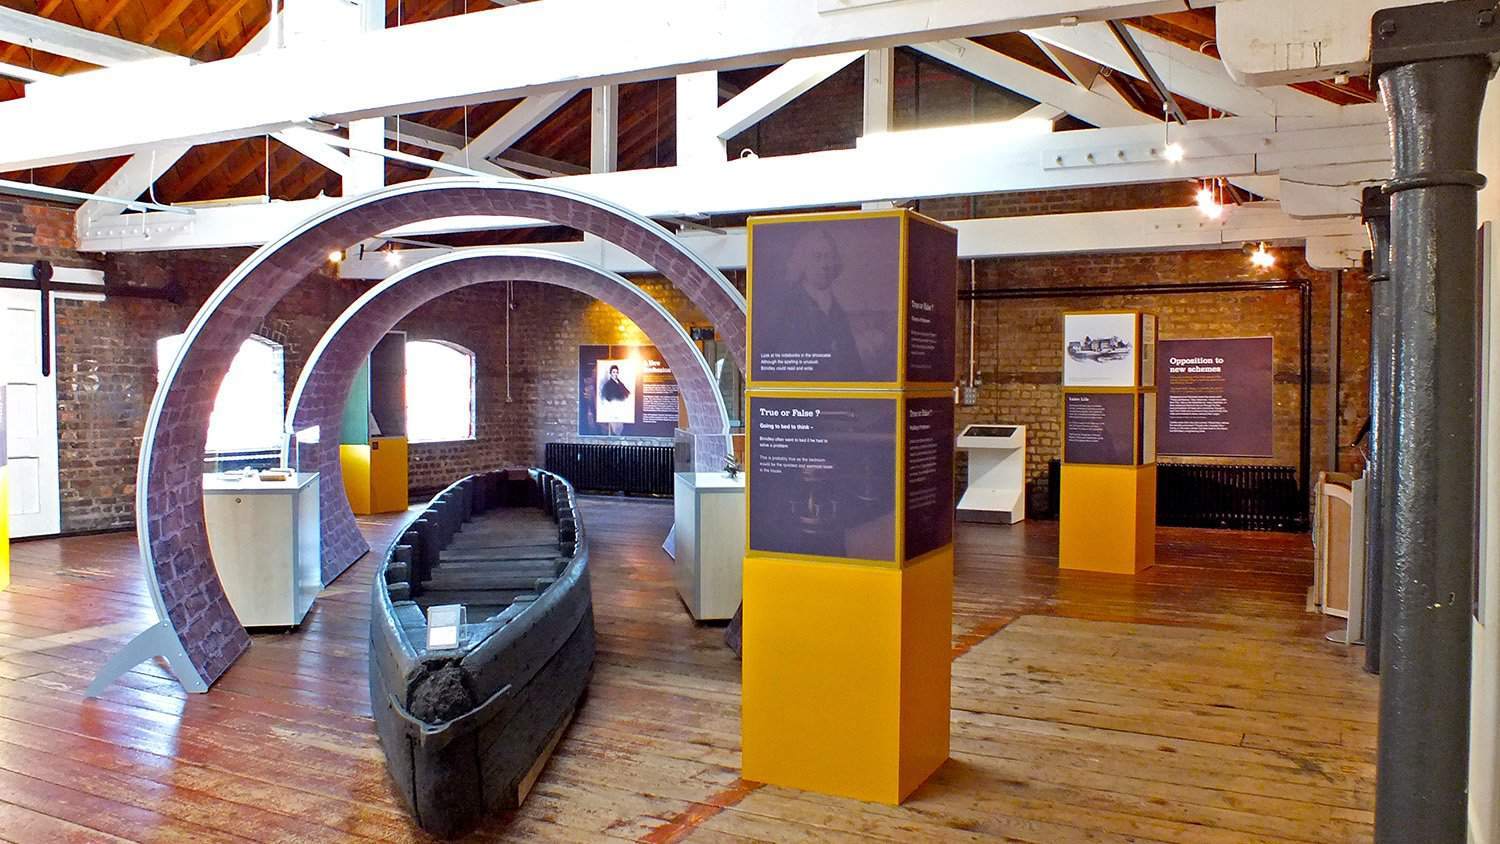 Brindley 300 Exhibition with Kiosk from Blackbox-av at National Waterways Museum